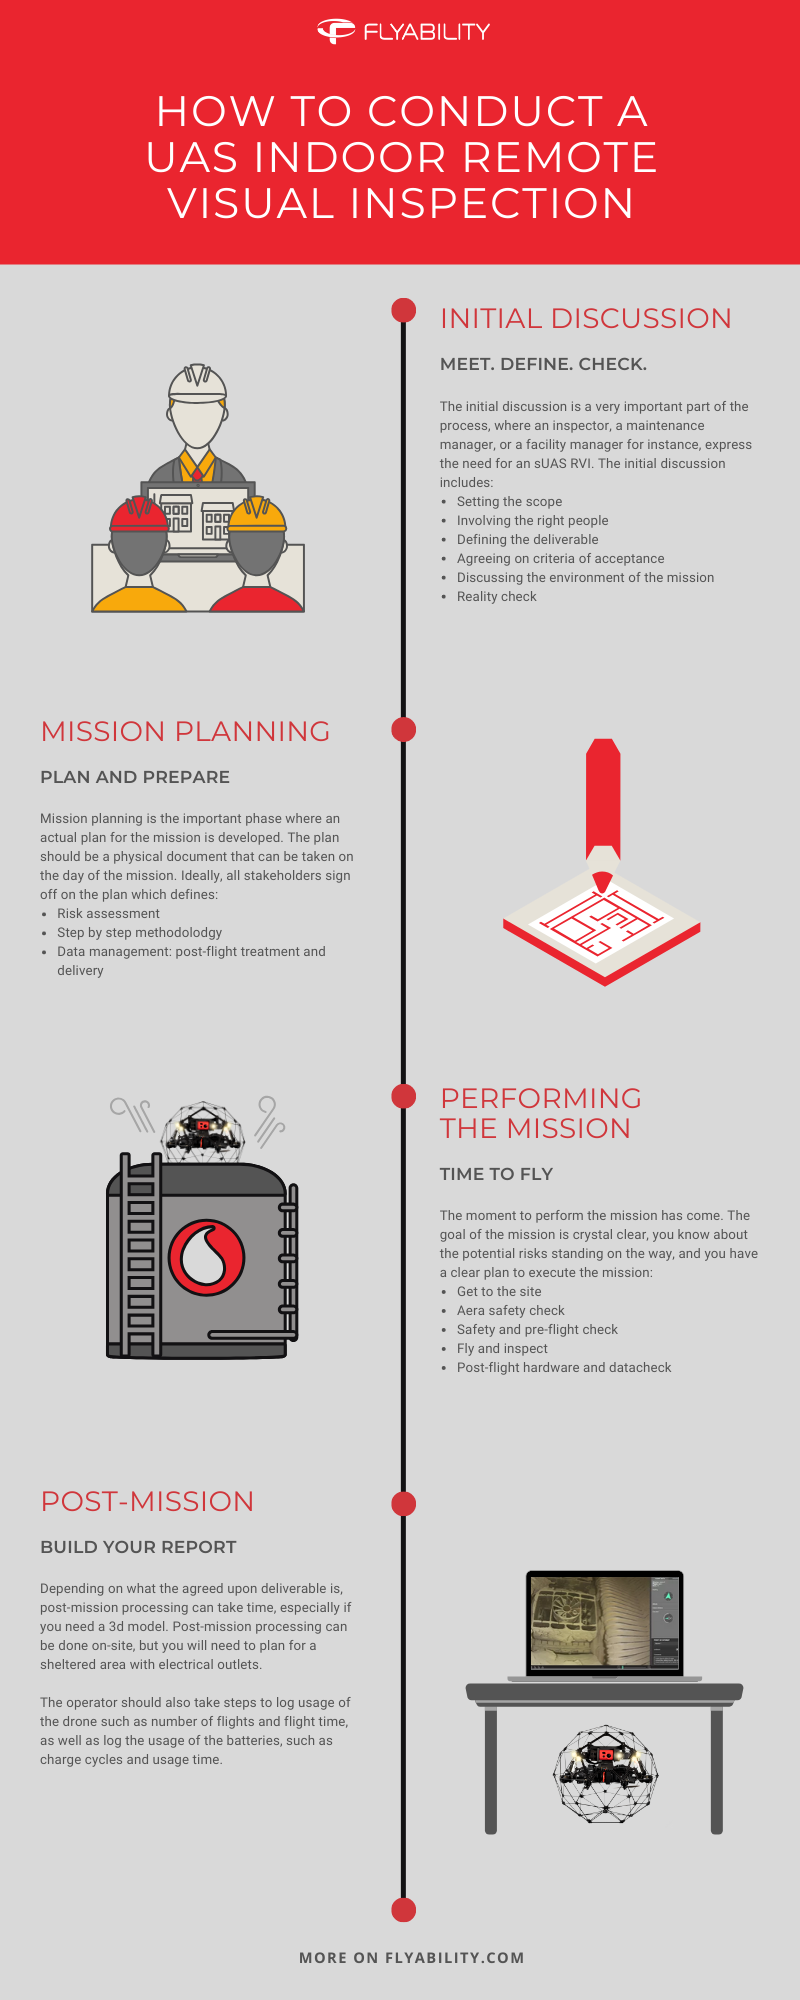 How to conduct a UAS indoor remote visual inspection -infographic